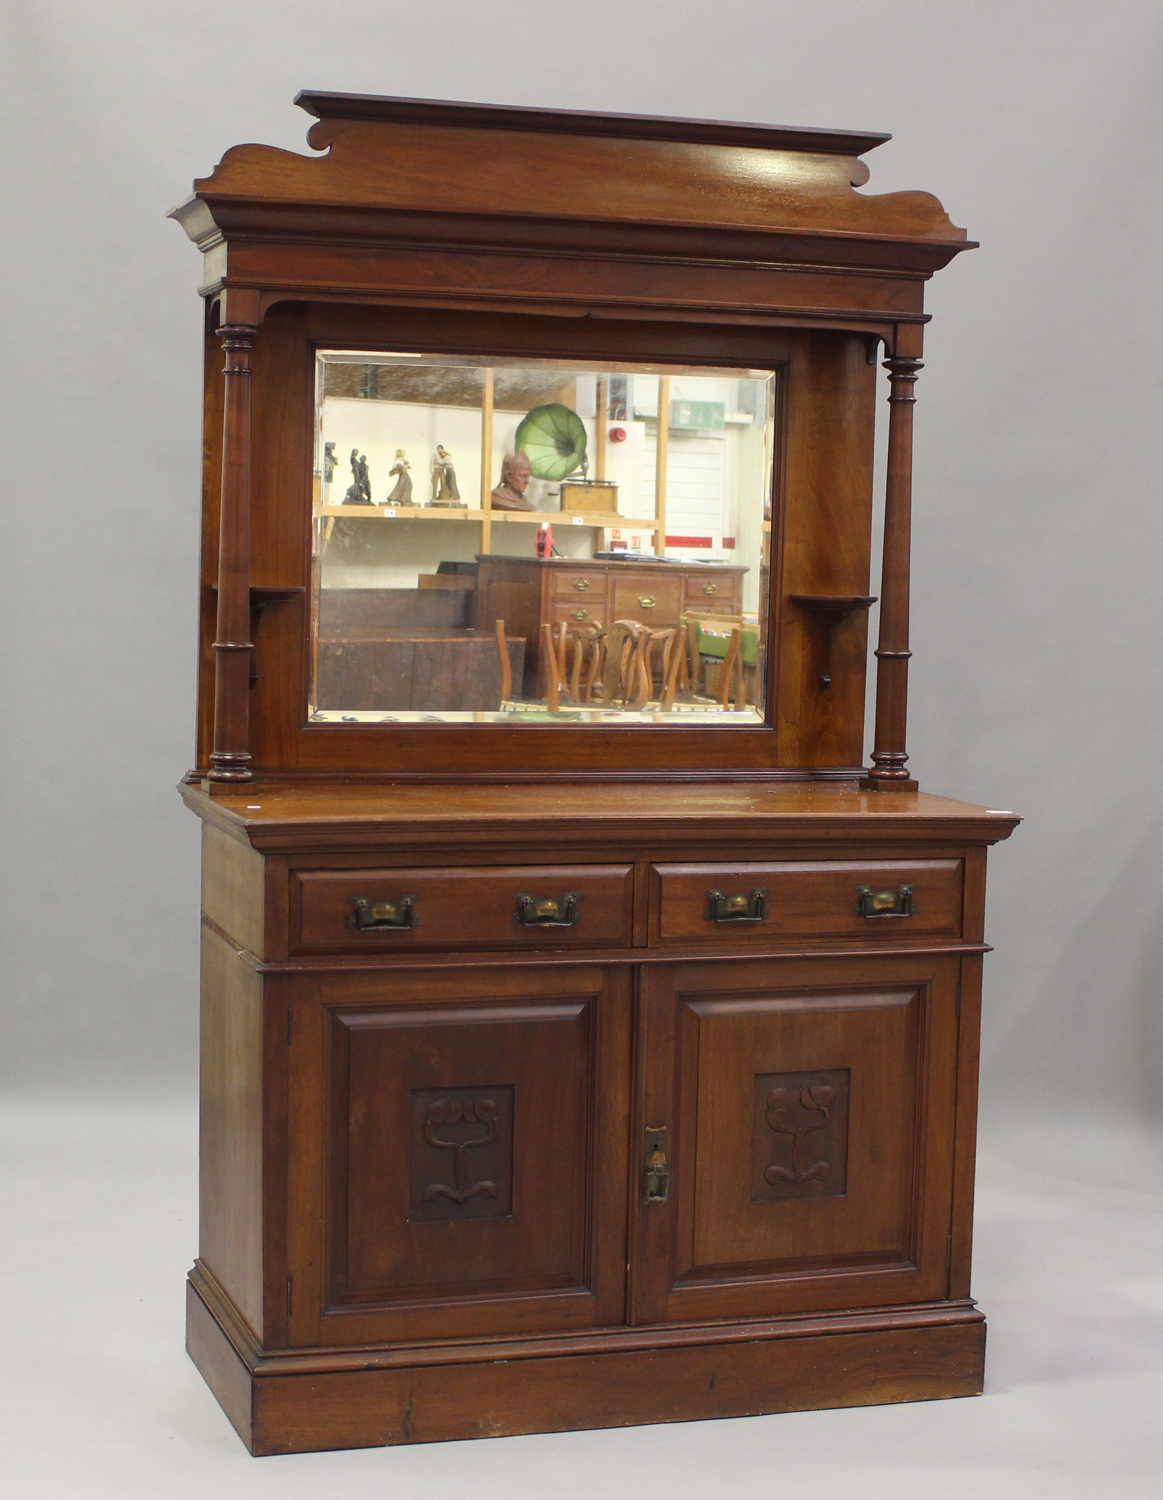 An Edwardian Arts and Crafts mahogany mirror back side cabinet, fitted with two drawers above a